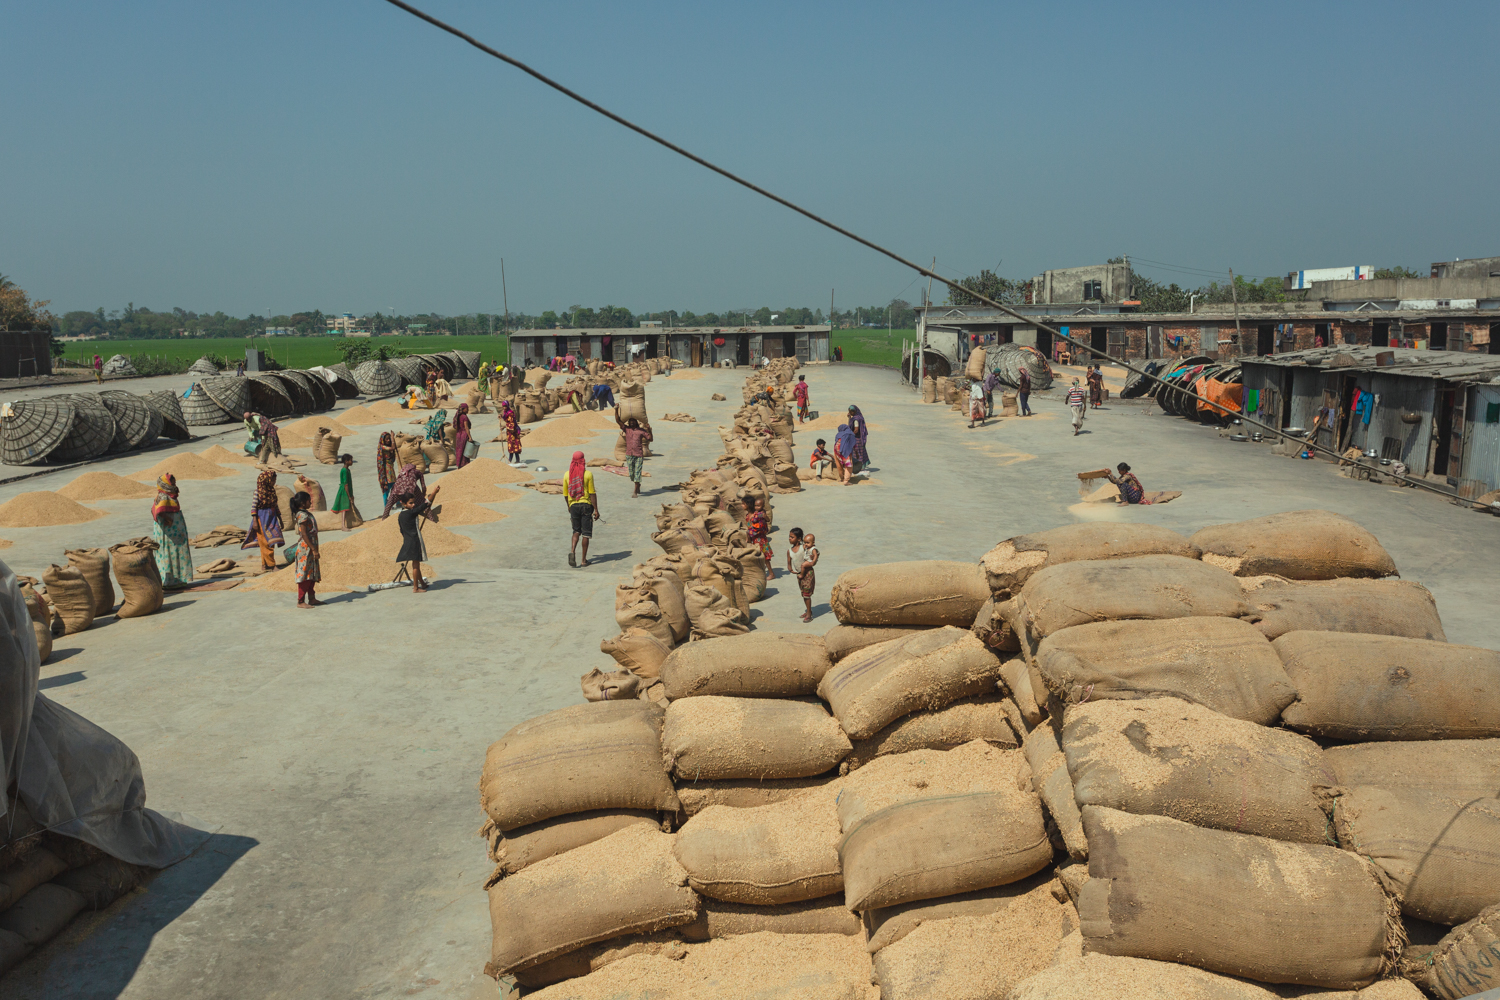 Families and workers gather at Rice Mills in Dhaka, Bangladesh.